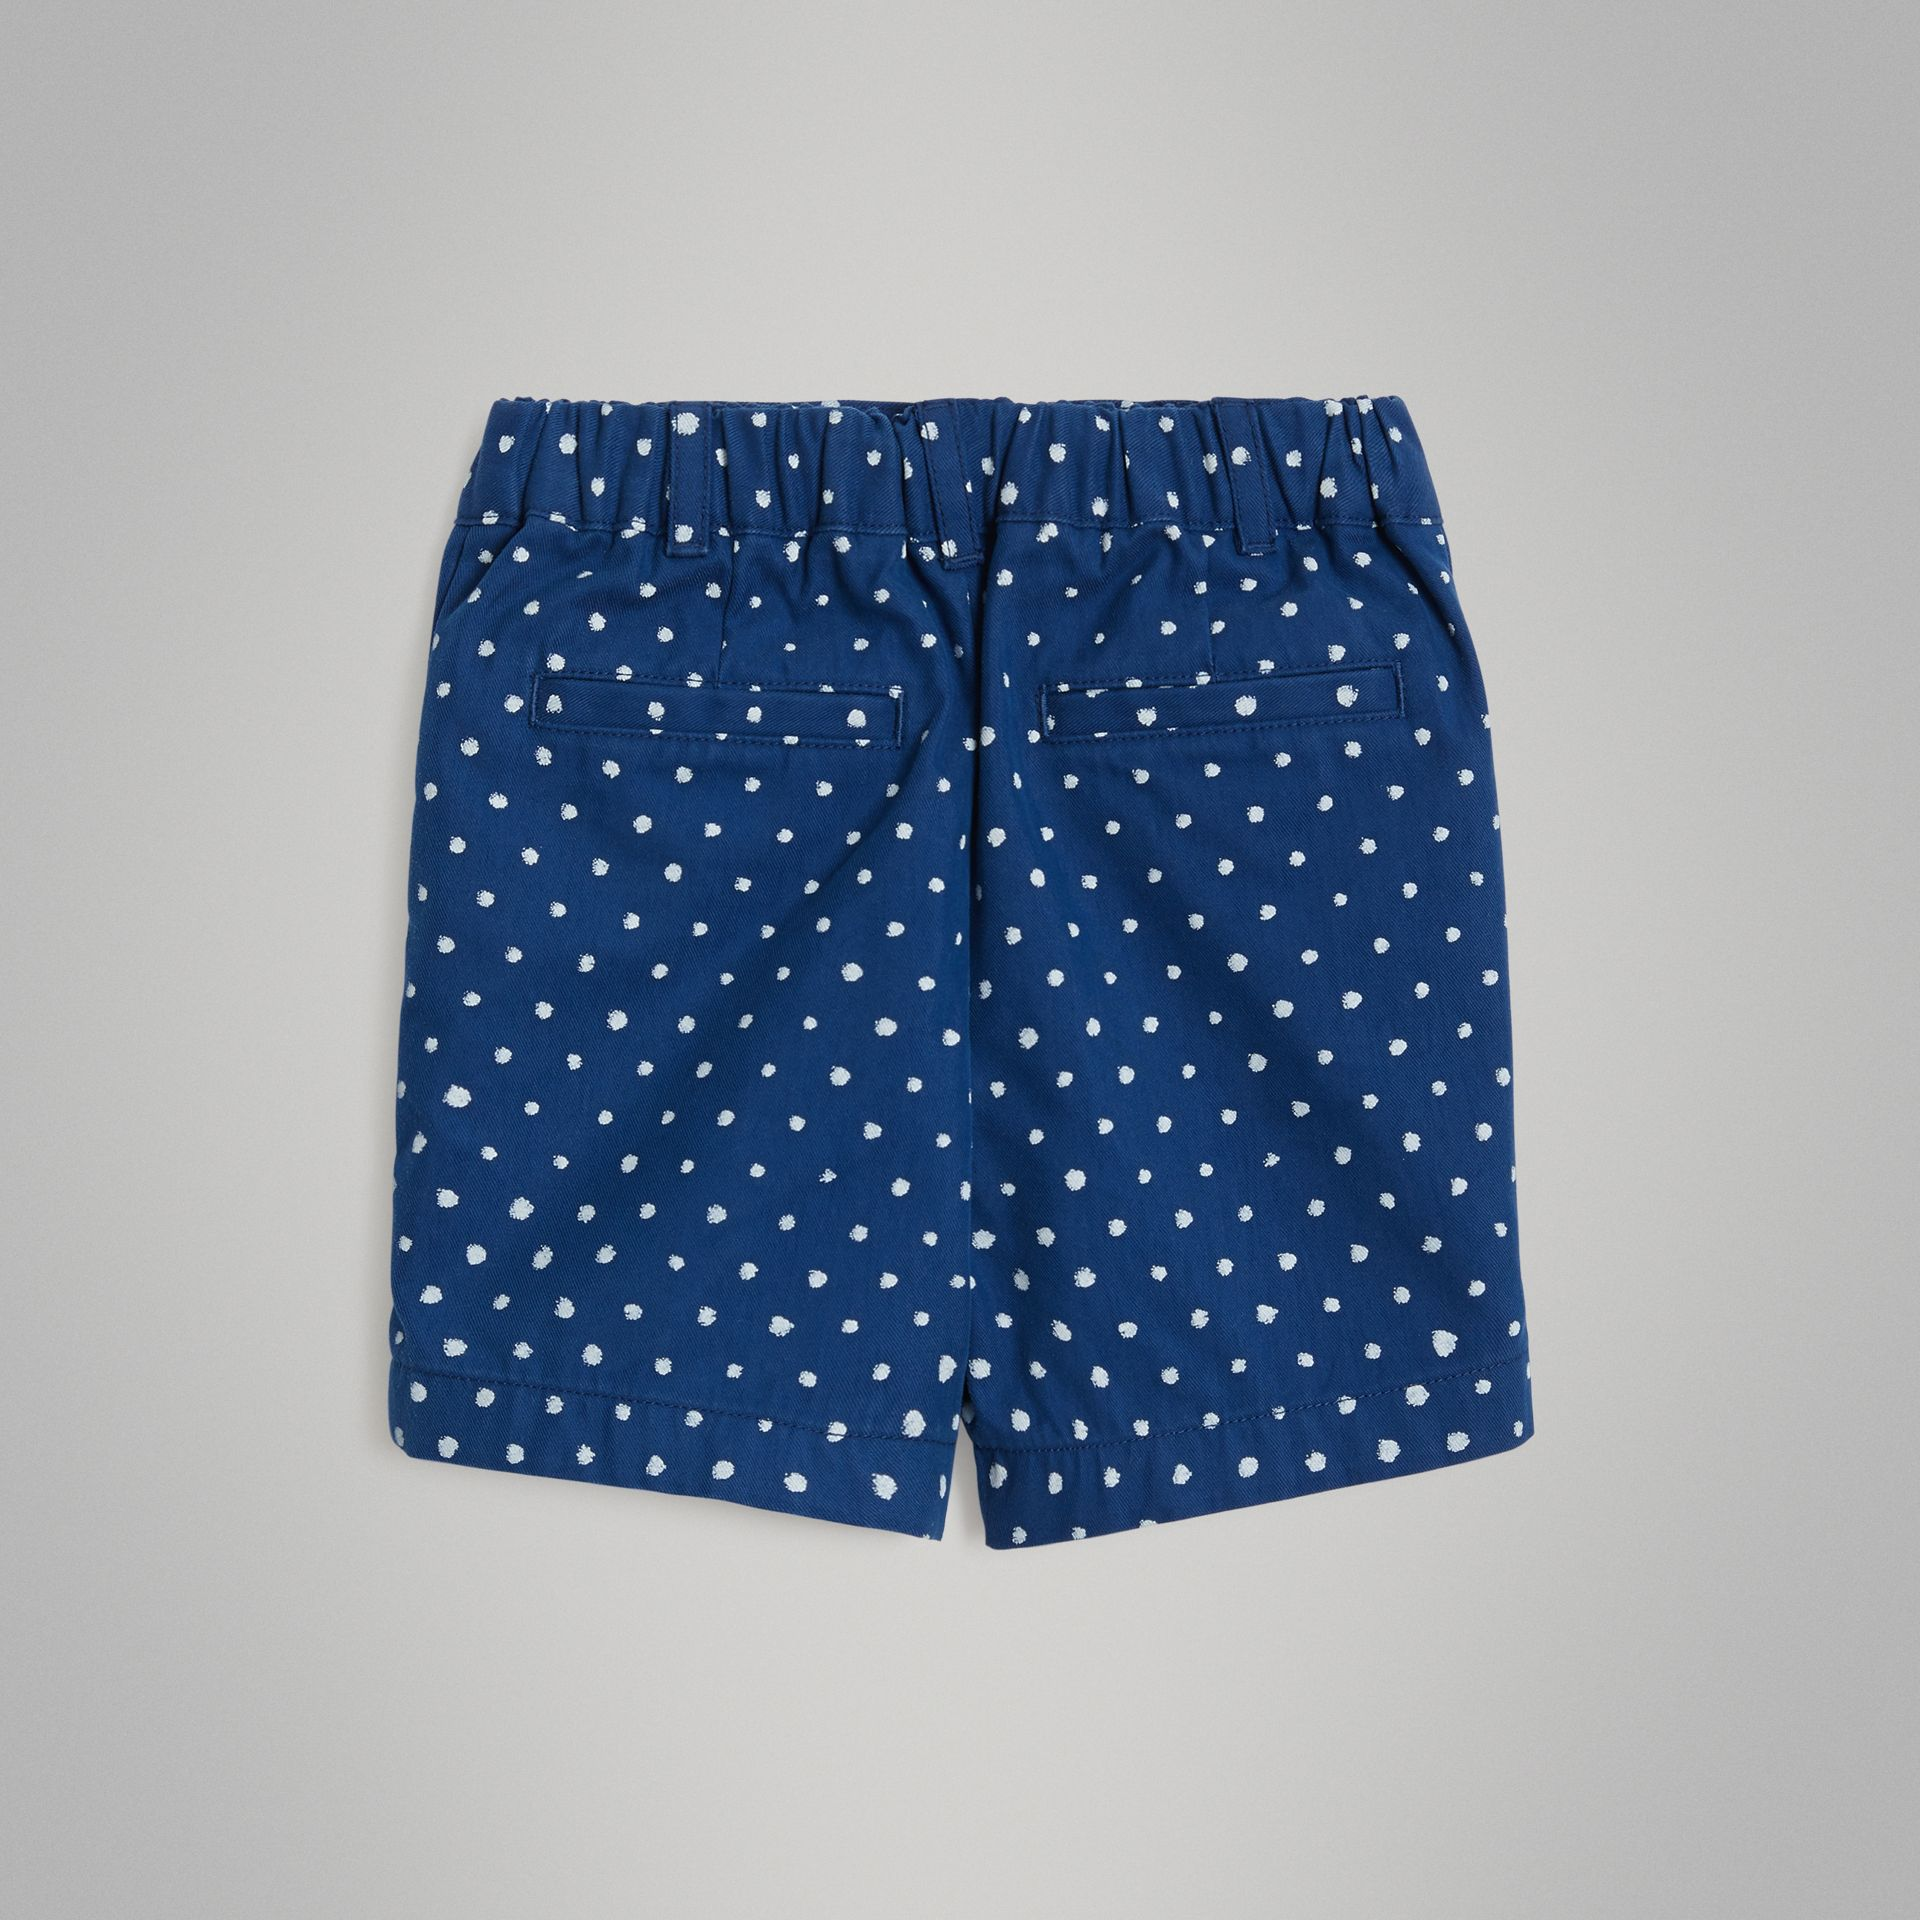 Spot Print Cotton Blend Shorts in Bright Navy - Children | Burberry - gallery image 3